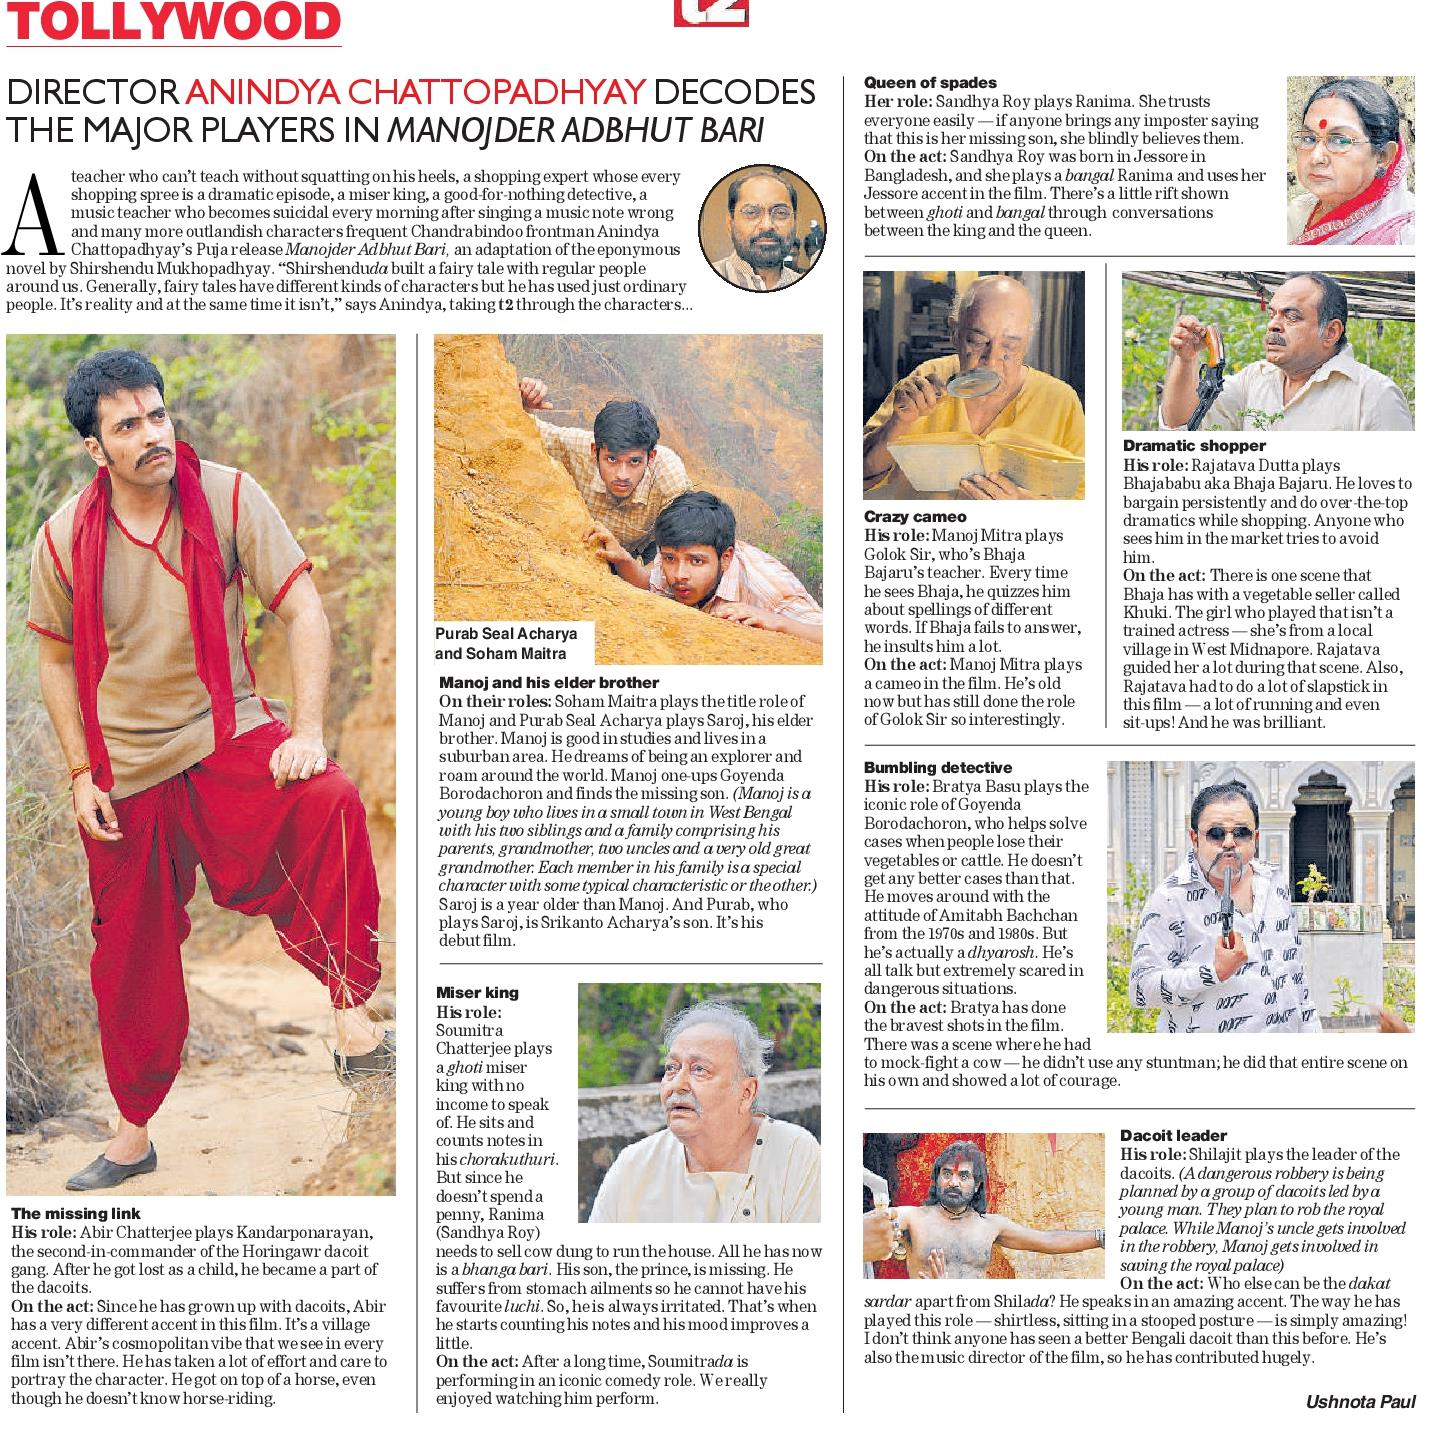 DIRECTOR ANINDYA CHATTOPADHYAY DECODES THE MAJOR PLAYERS IN MANOJDER ADBHUT BARI